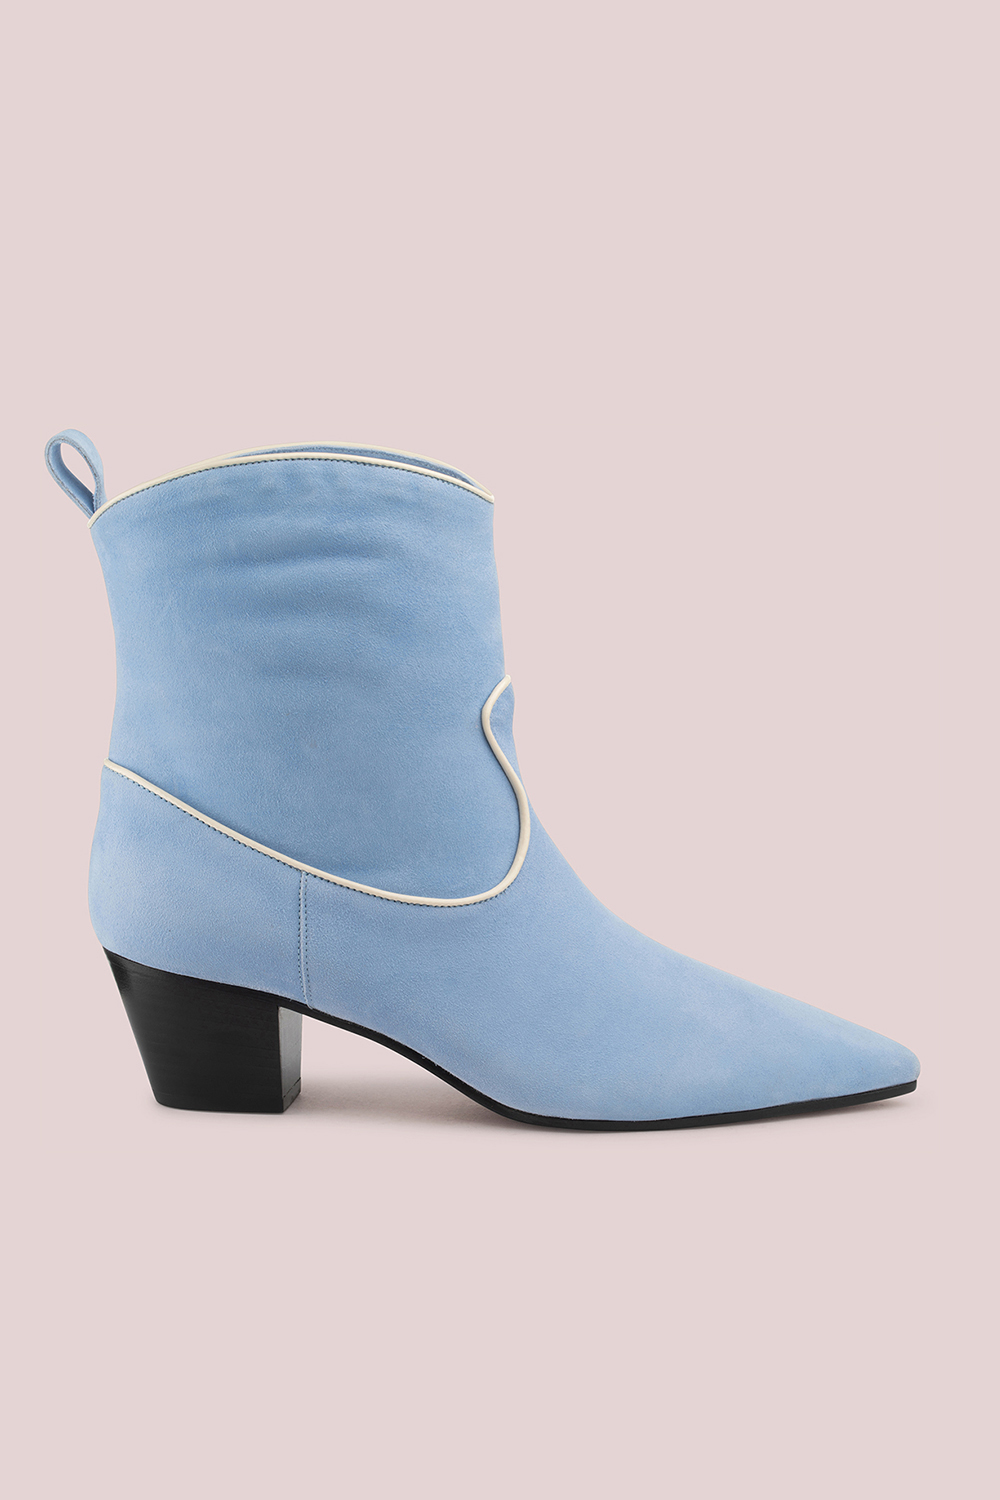 WEST BOOT IN SUEDE AZZURRO